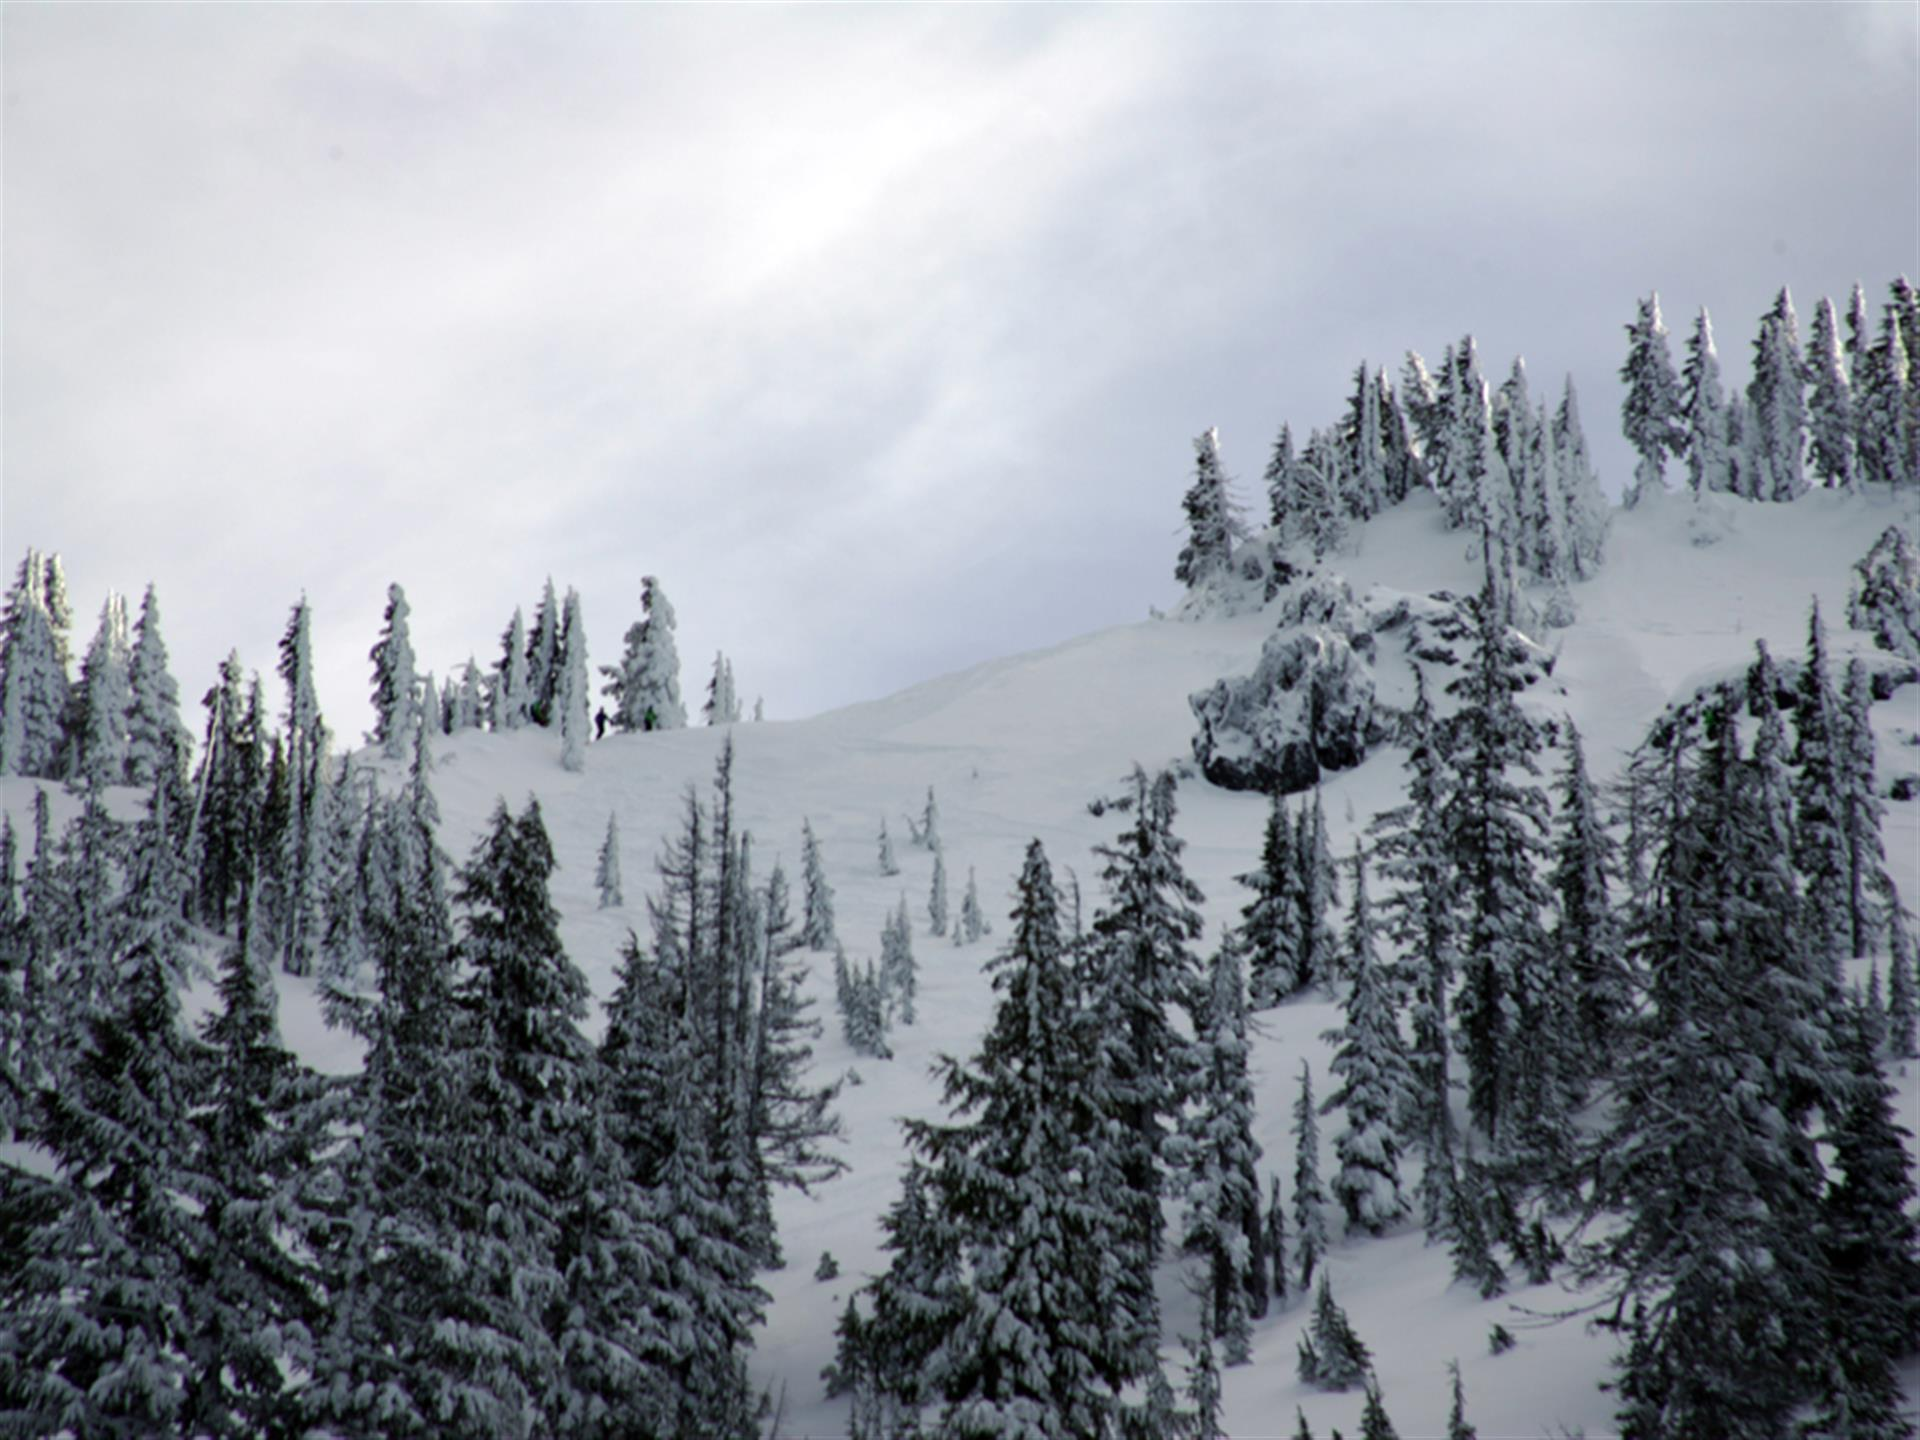 mountain with snow and snow-covered trees